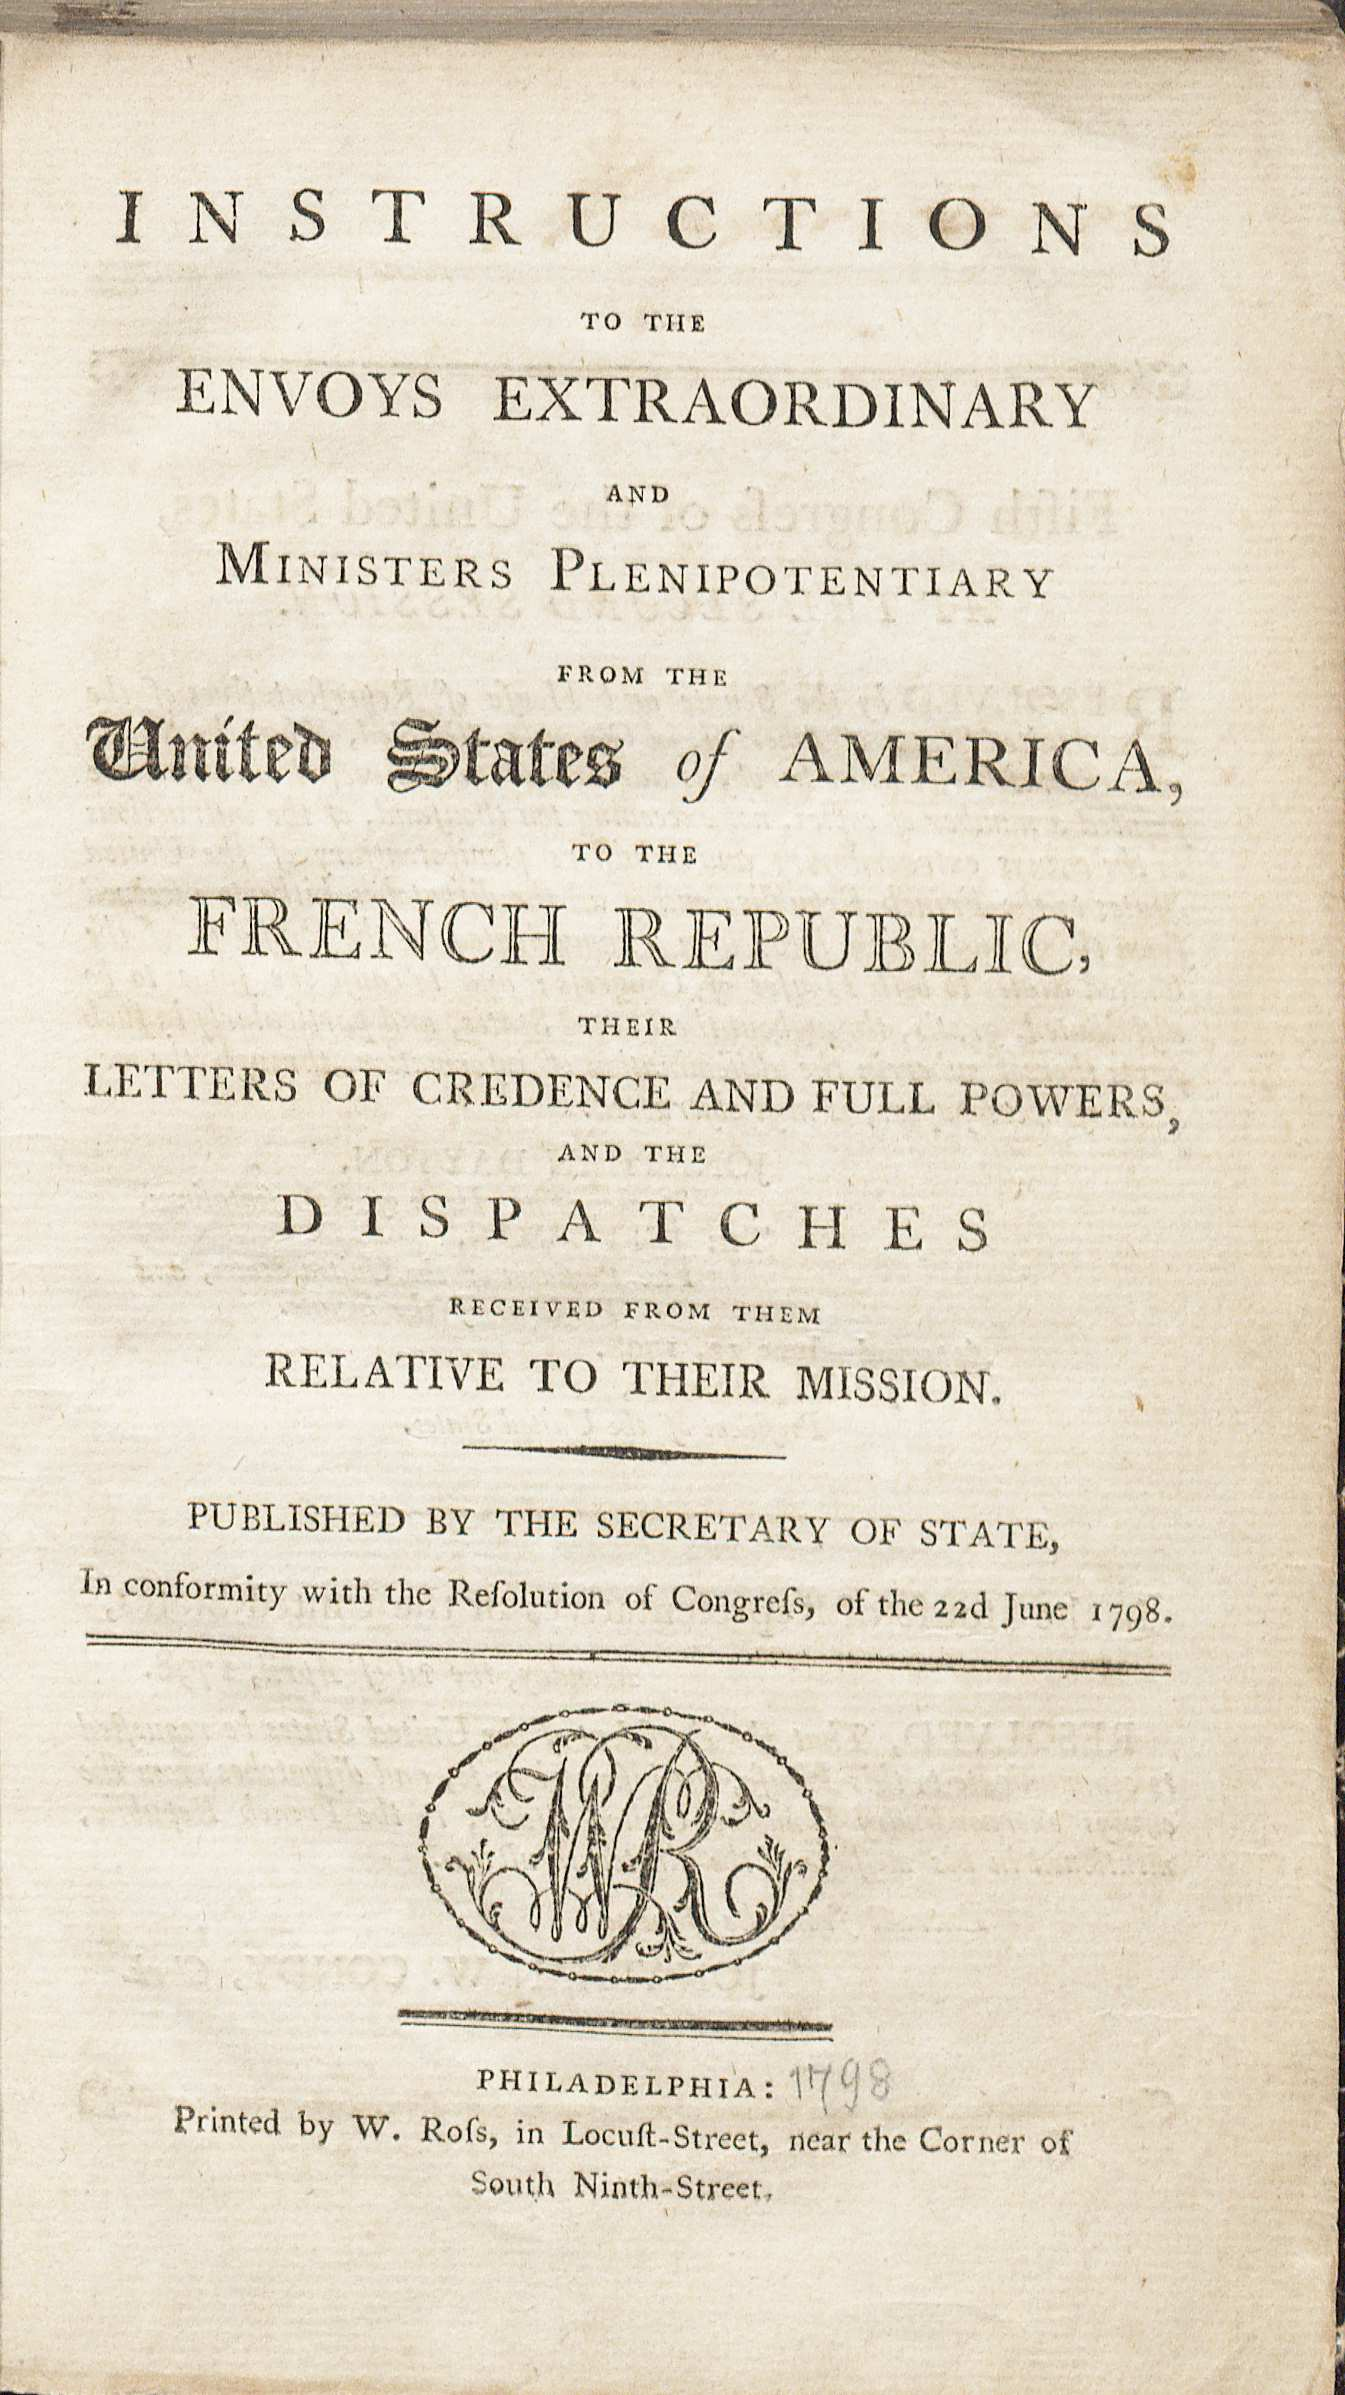 (Tracy W. McGregor Library of American History. Image by Edward Gaynor. )